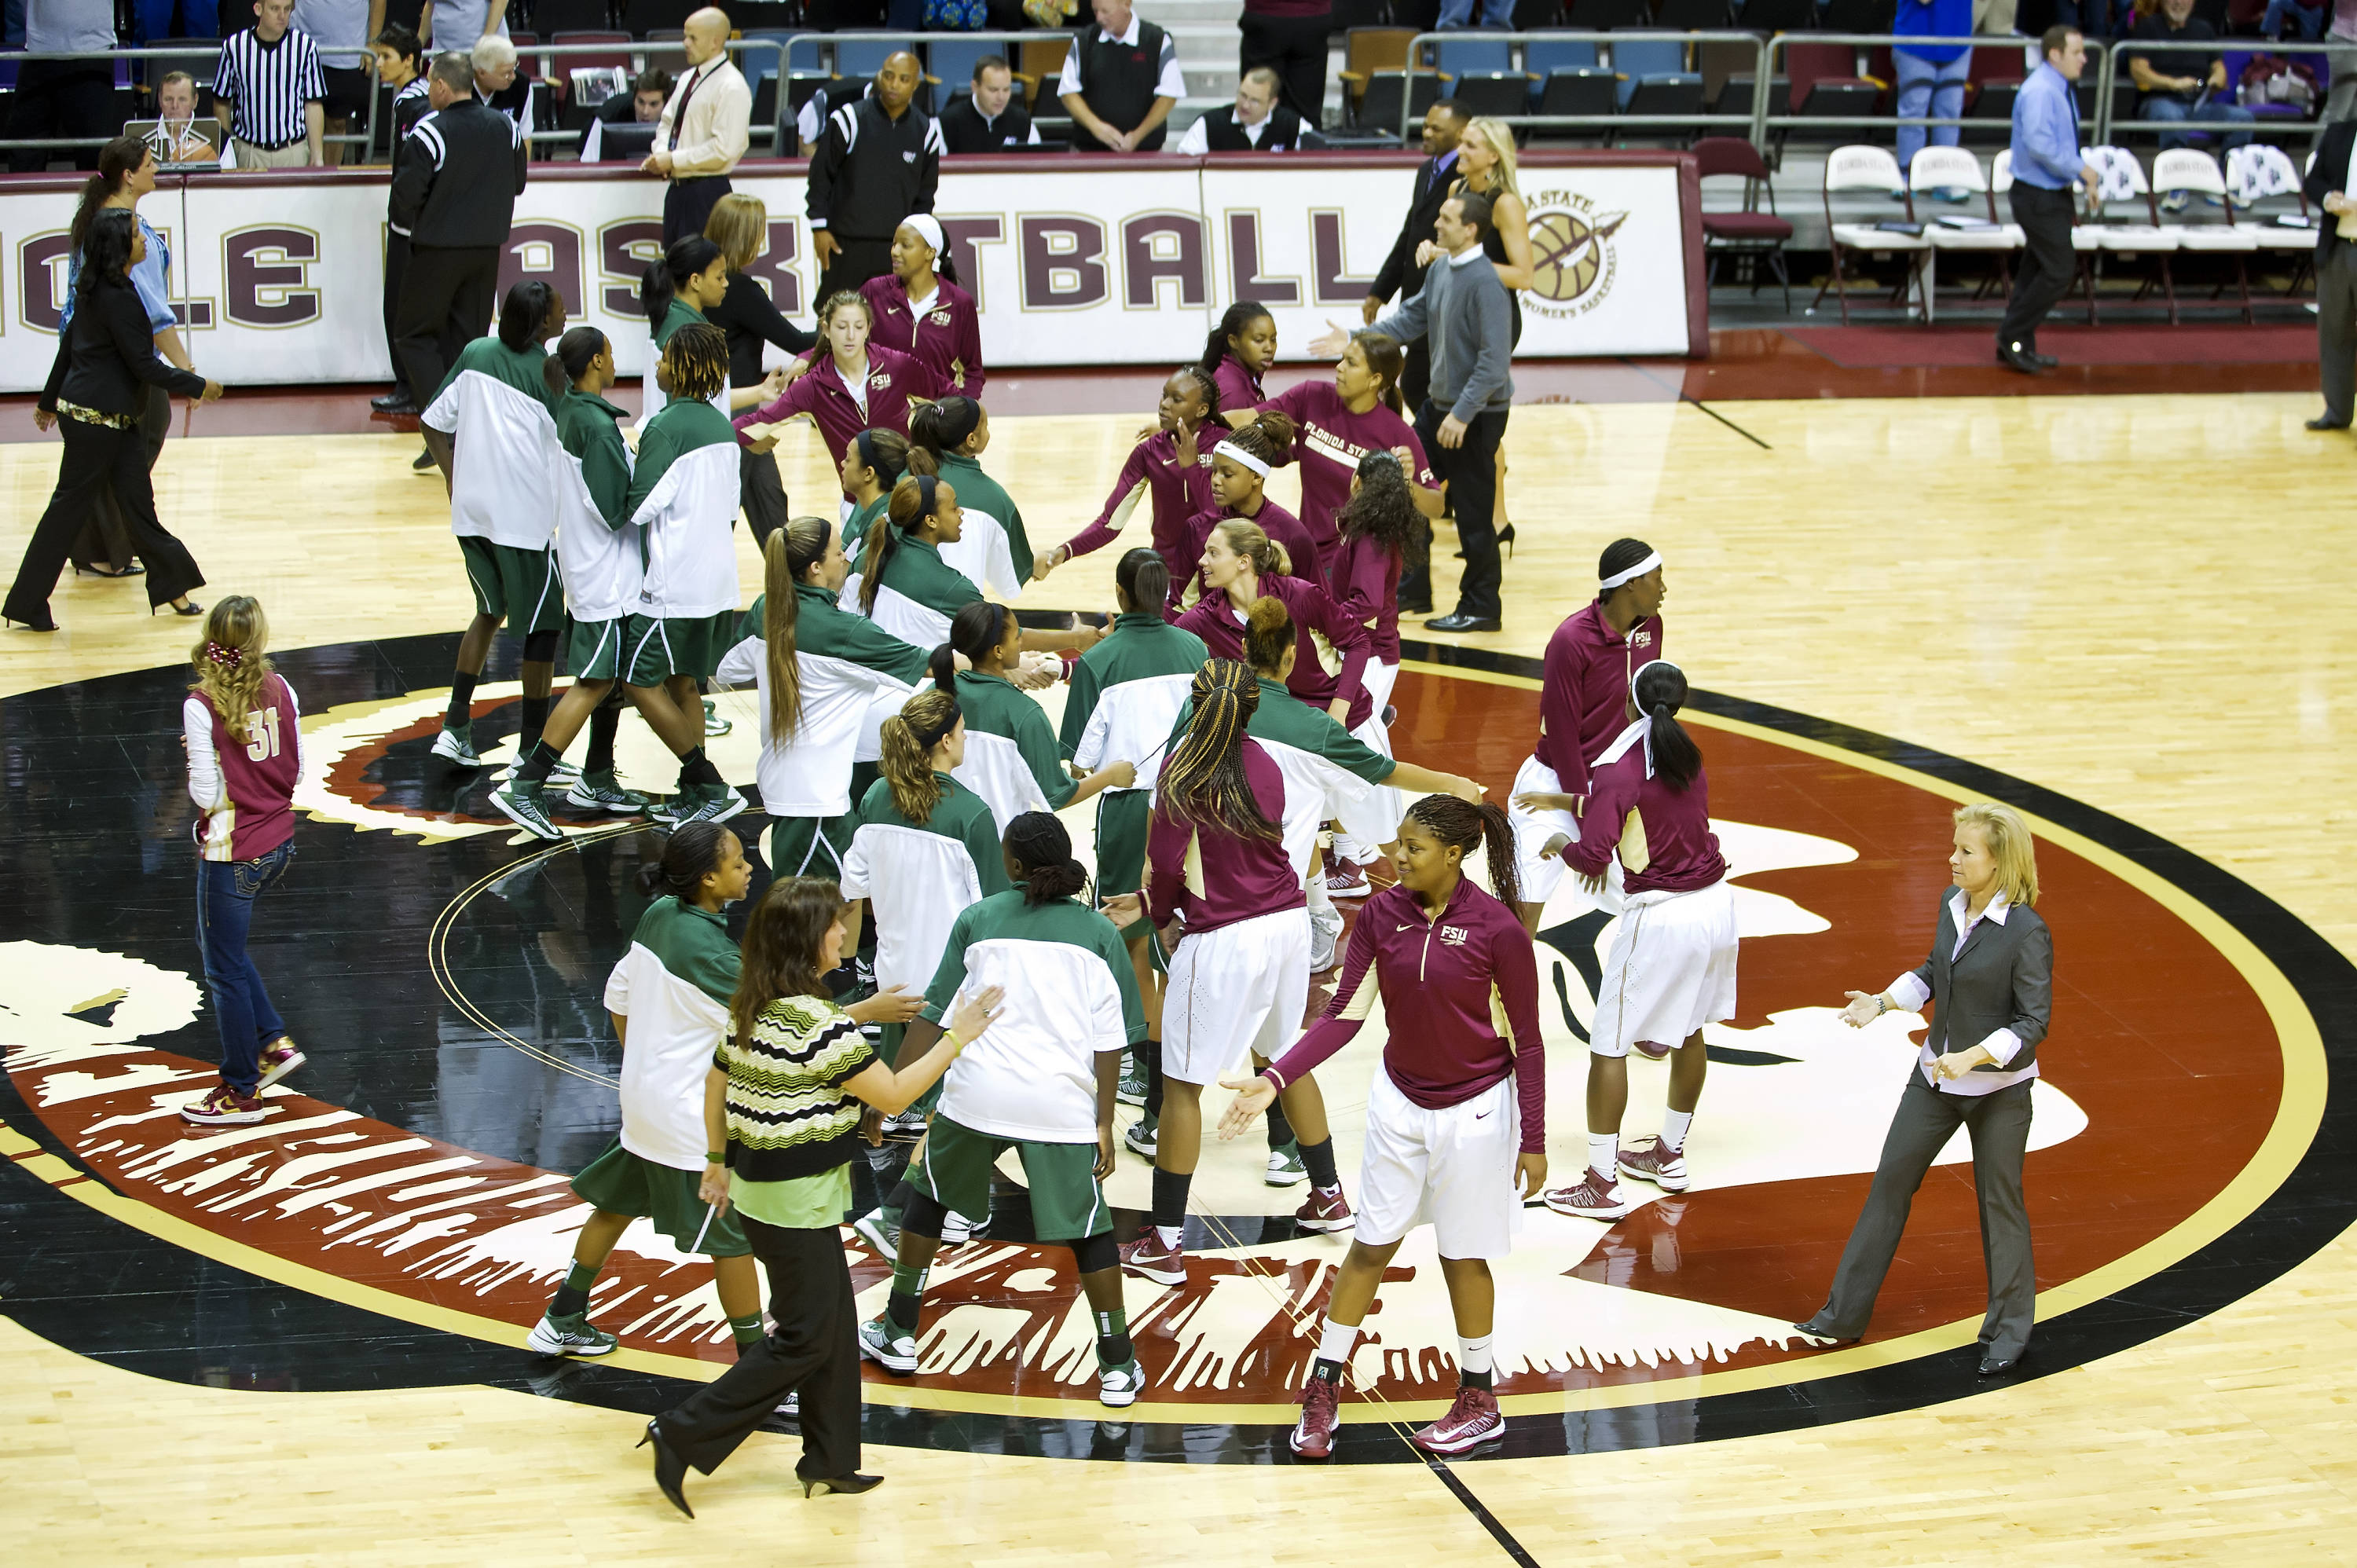 FSU players shake hands pre-game with Stetson players